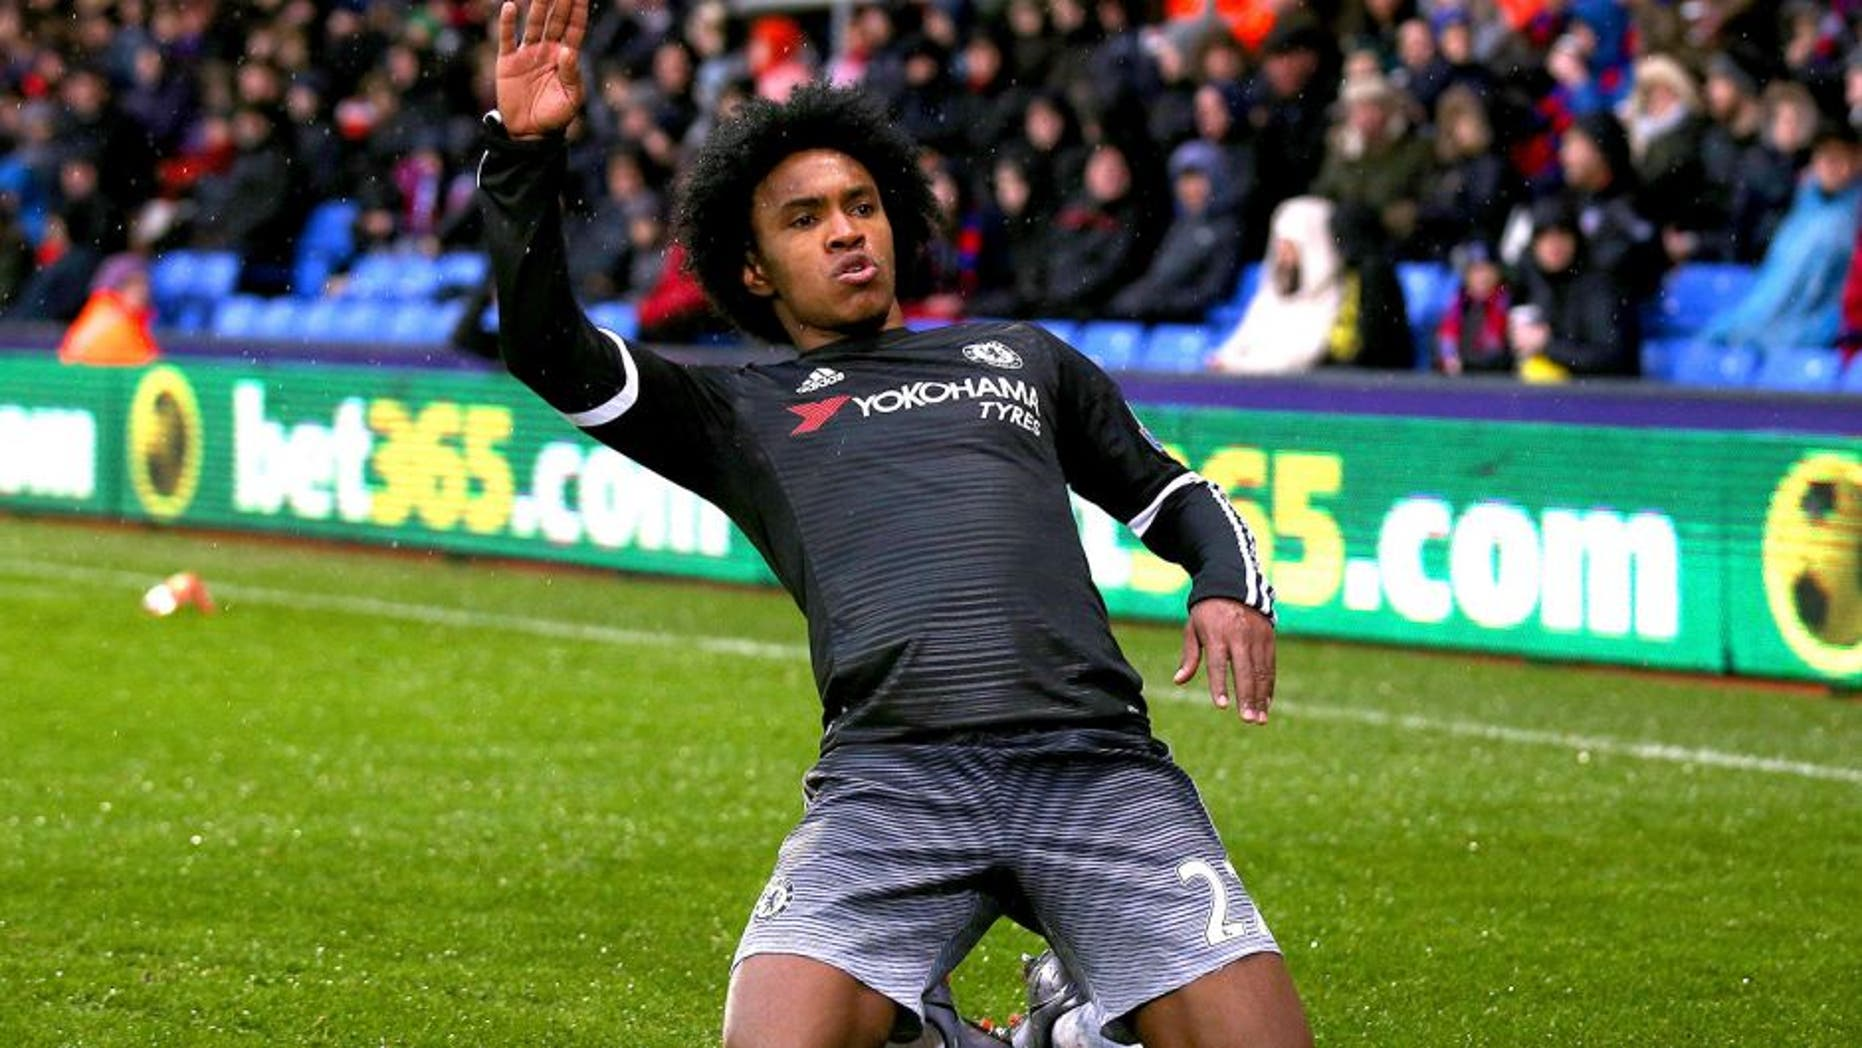 LONDON, ENGLAND - JANUARY 03: Willian of Chelsea celebrates after scoring his team's second goal during the Barclays Premier League match between Crystal Palace and Chelsea at Selhurst Park on January 3, 2016 in London, England. (Photo by Ian Walton/Getty Images)